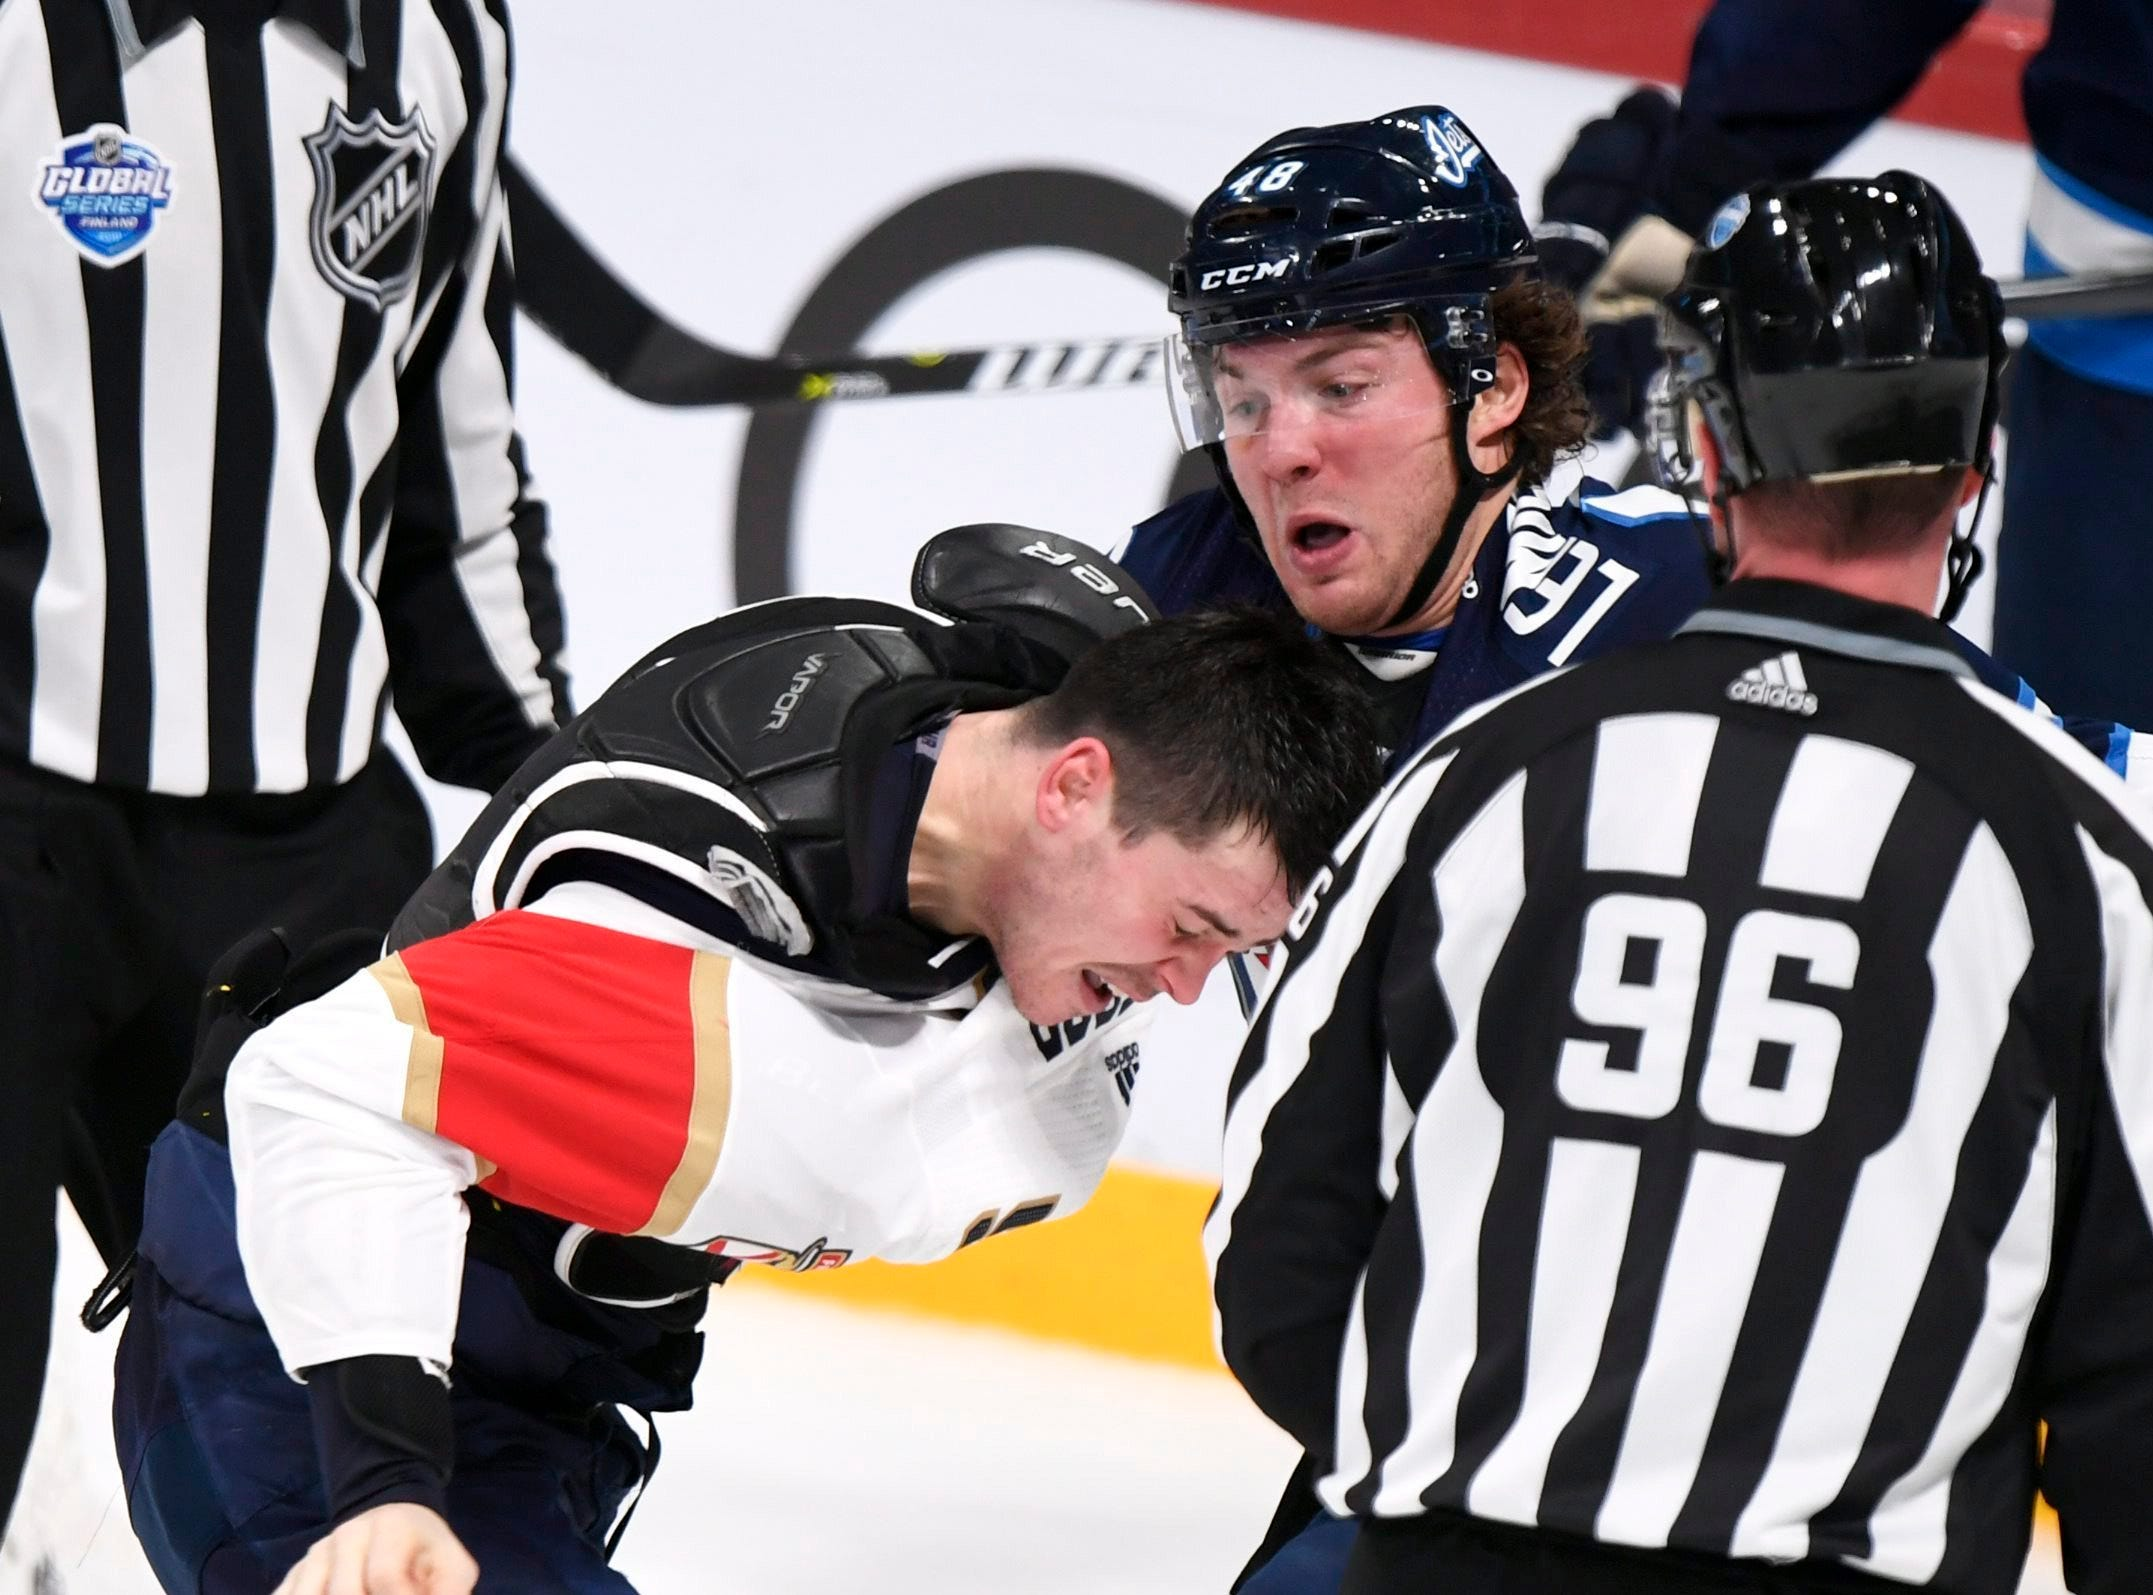 Nov. 3: Winnipeg Jets forward Brendan Lemieux, right, was suspended two games for an illegal check to the head of the Florida Panthers' Vincent Trocheck. Lost pay: $9,023.30.